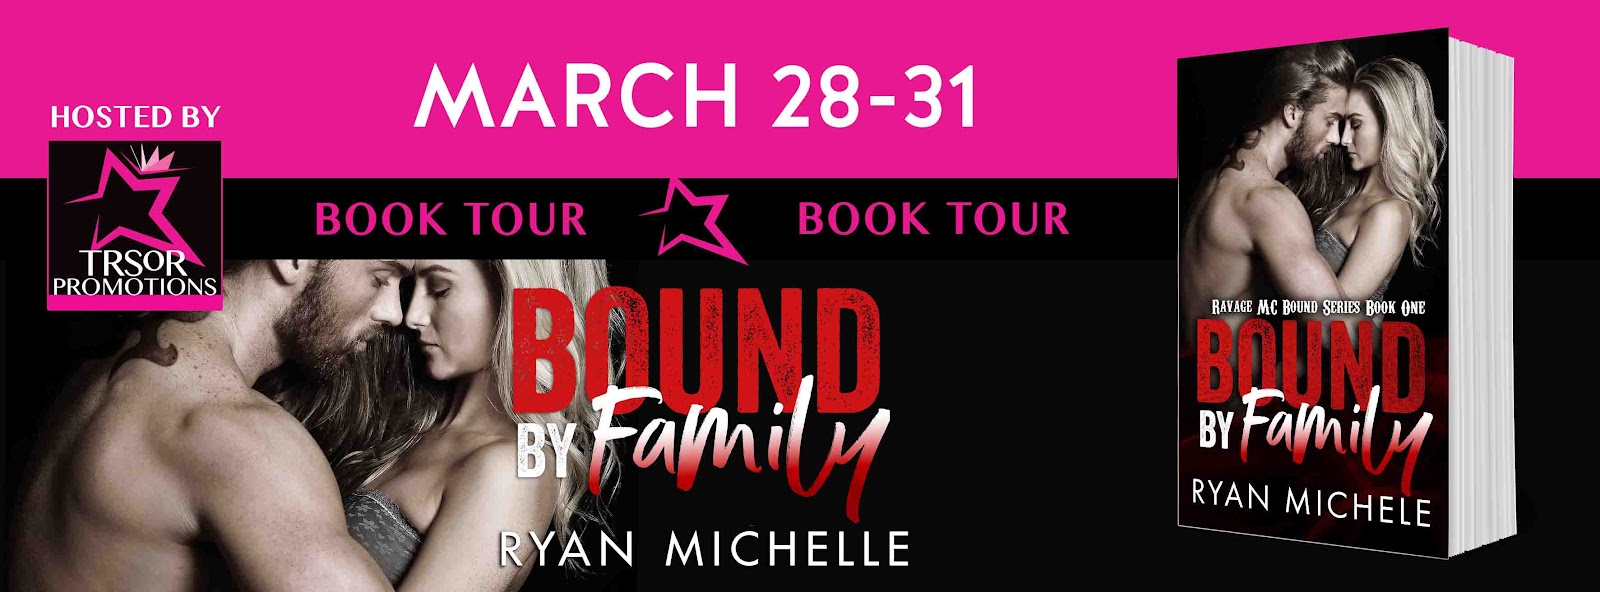 BOUND_BY_FAMILY_BOOK_TOUR.jpg